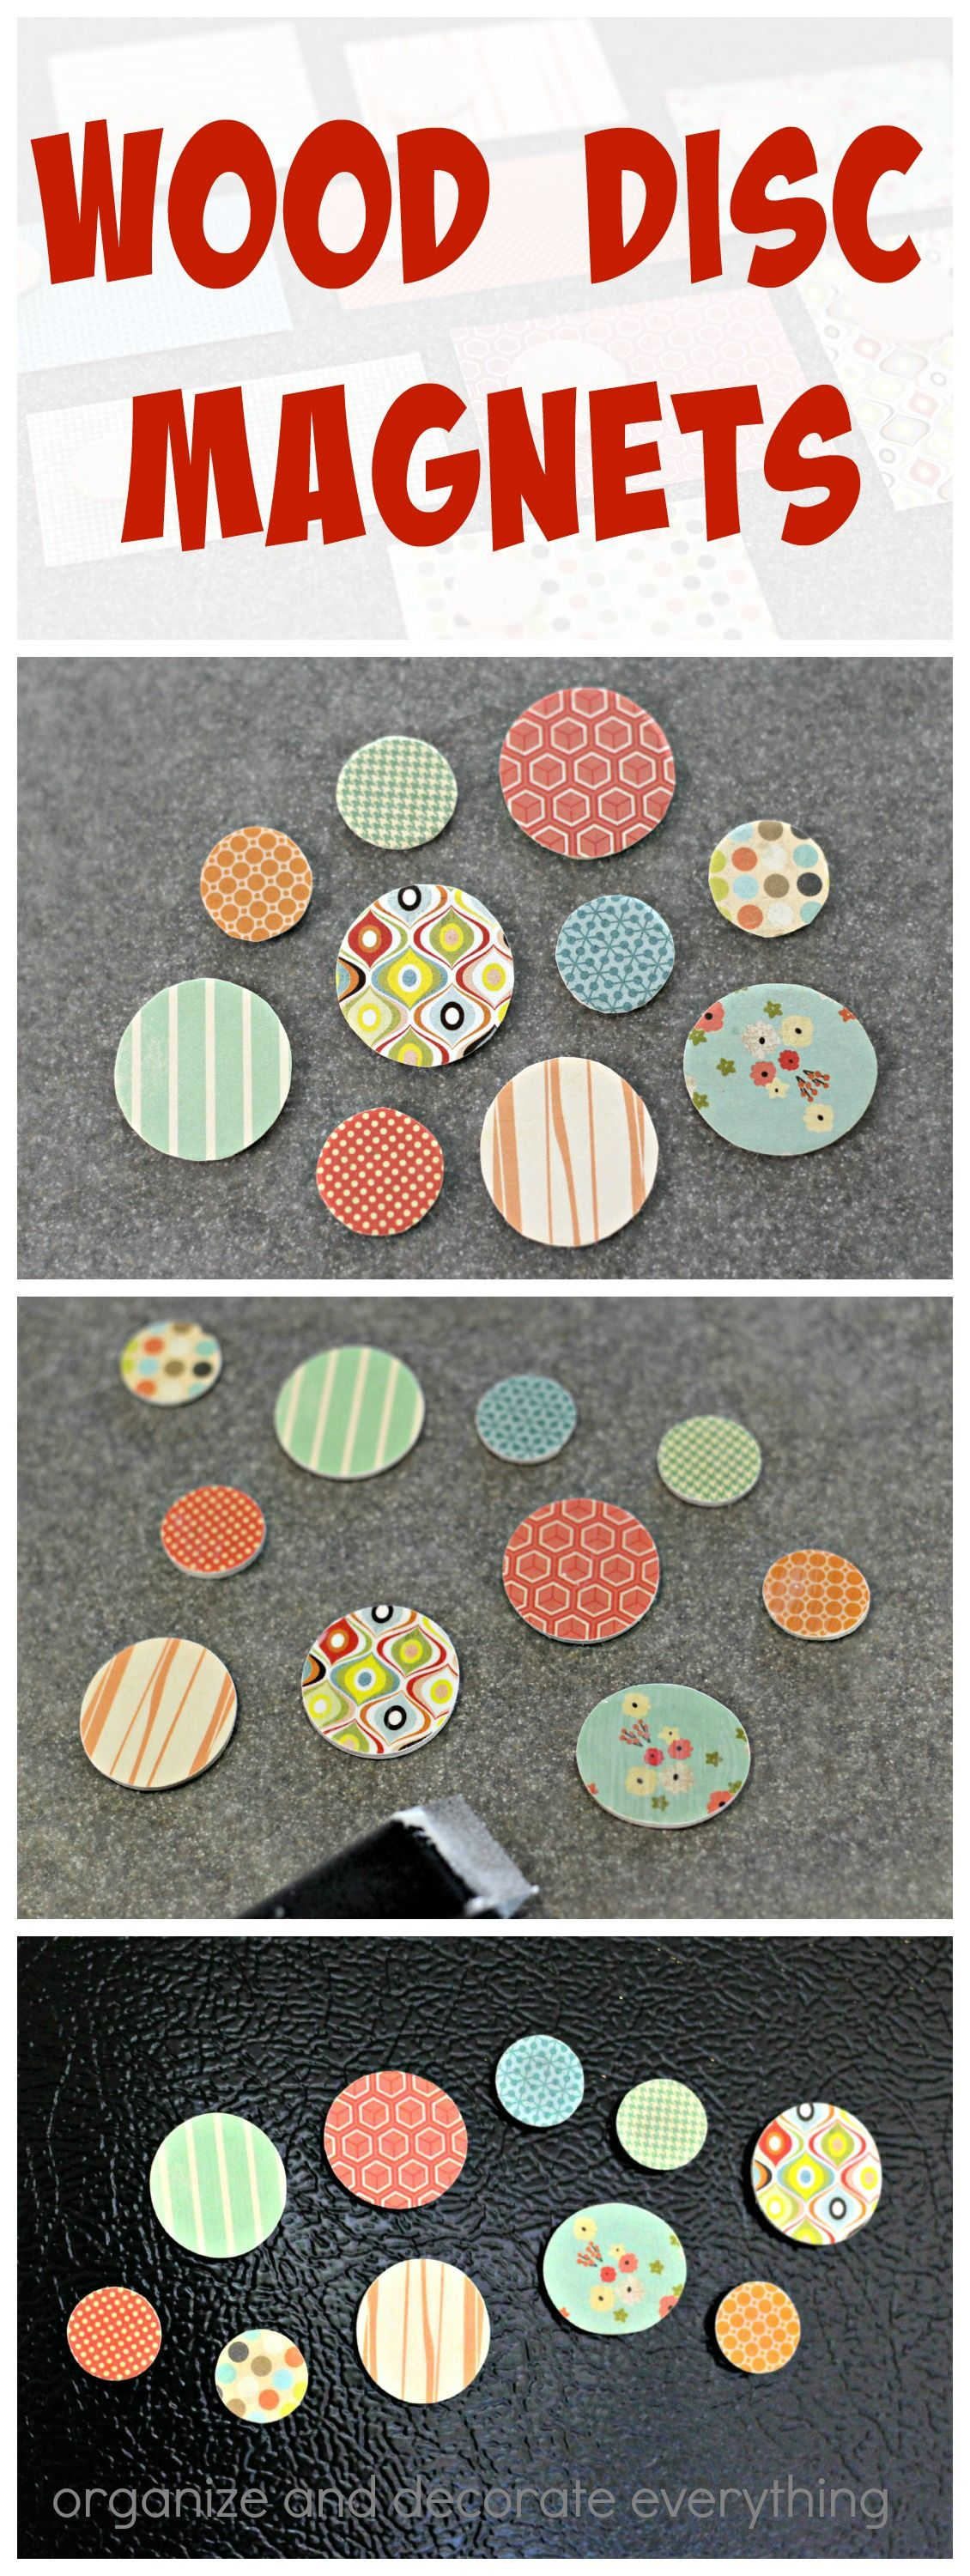 35+ Scrapbook paper crafts to sell ideas in 2021